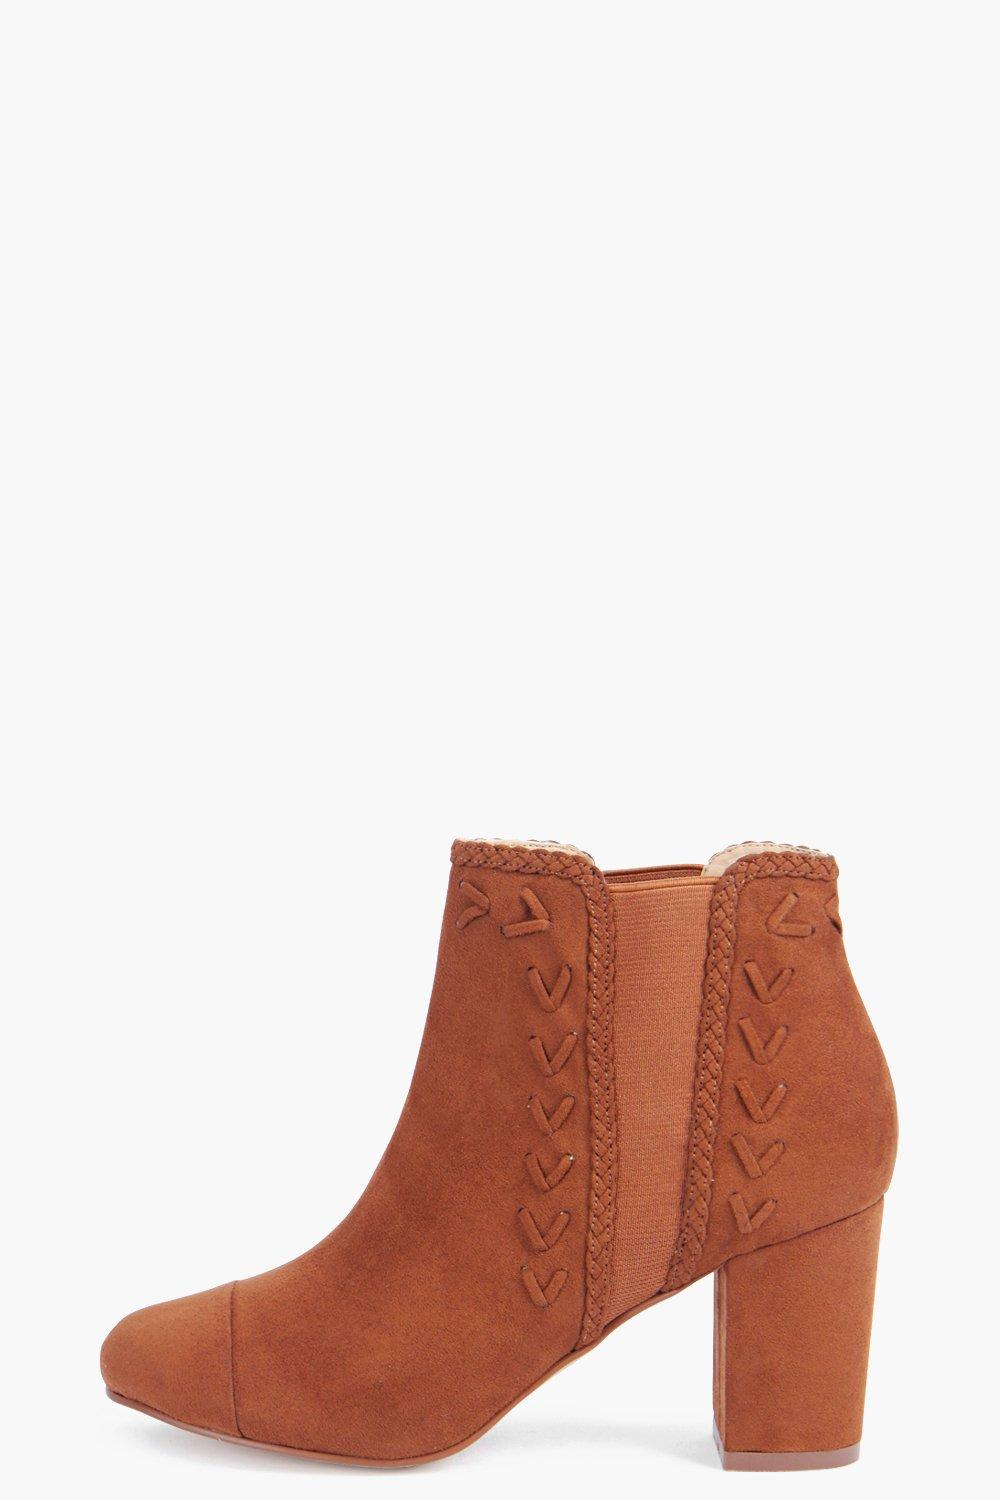 Millie Plaited Detail Boot